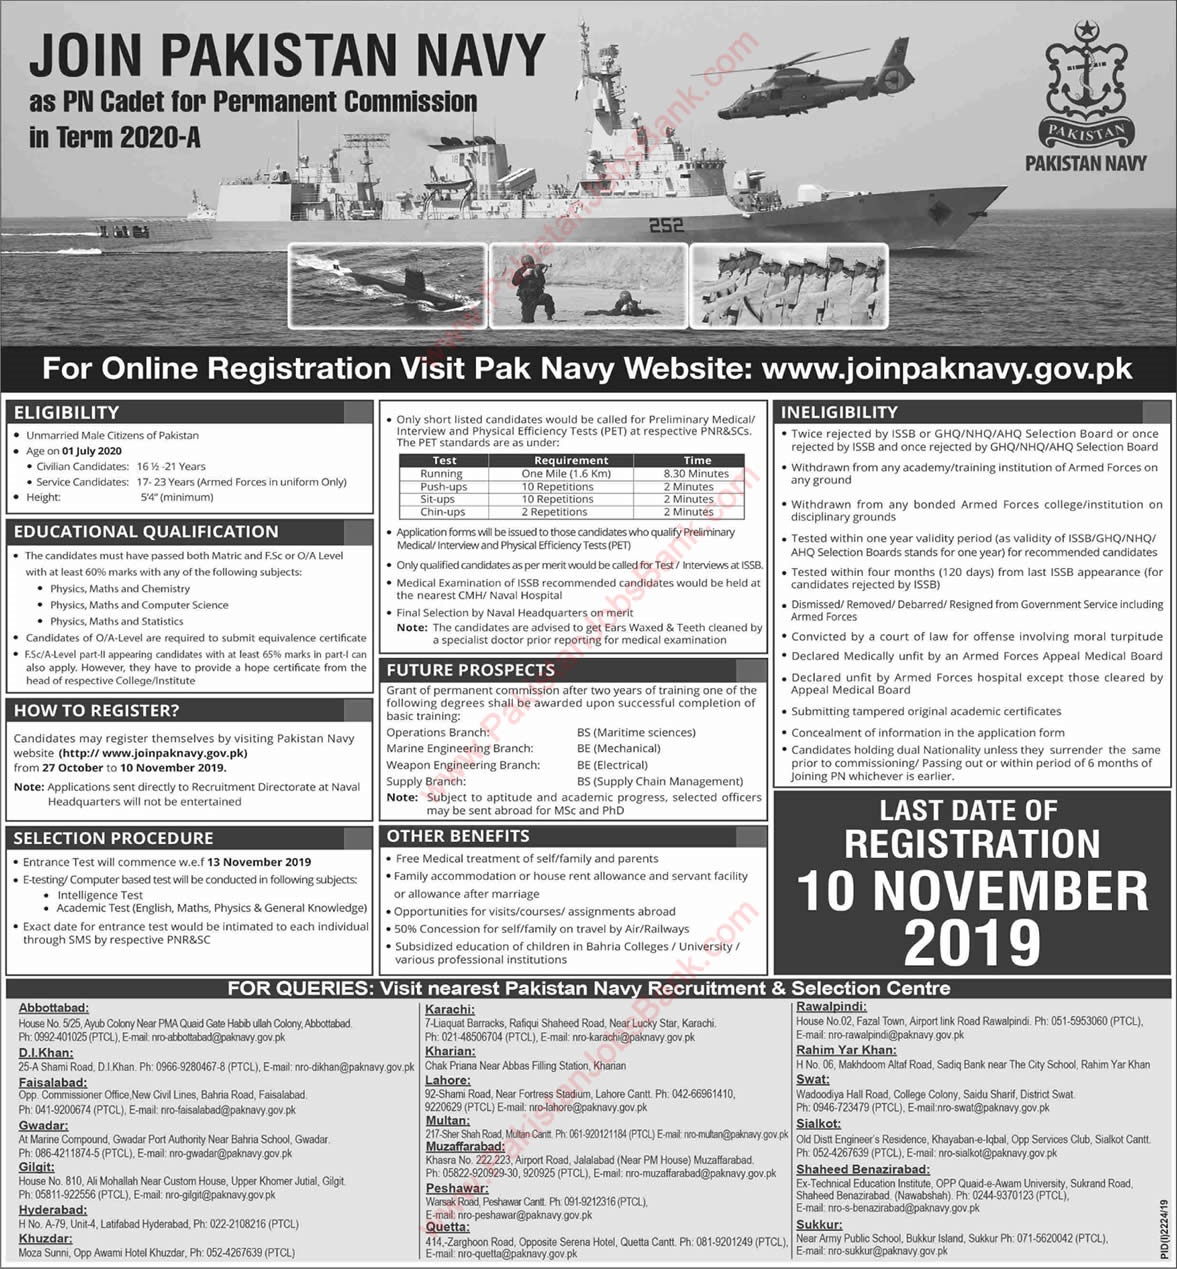 Pak navy new commissioned Jobs, Pakistan Navy latest jobs PN CADET